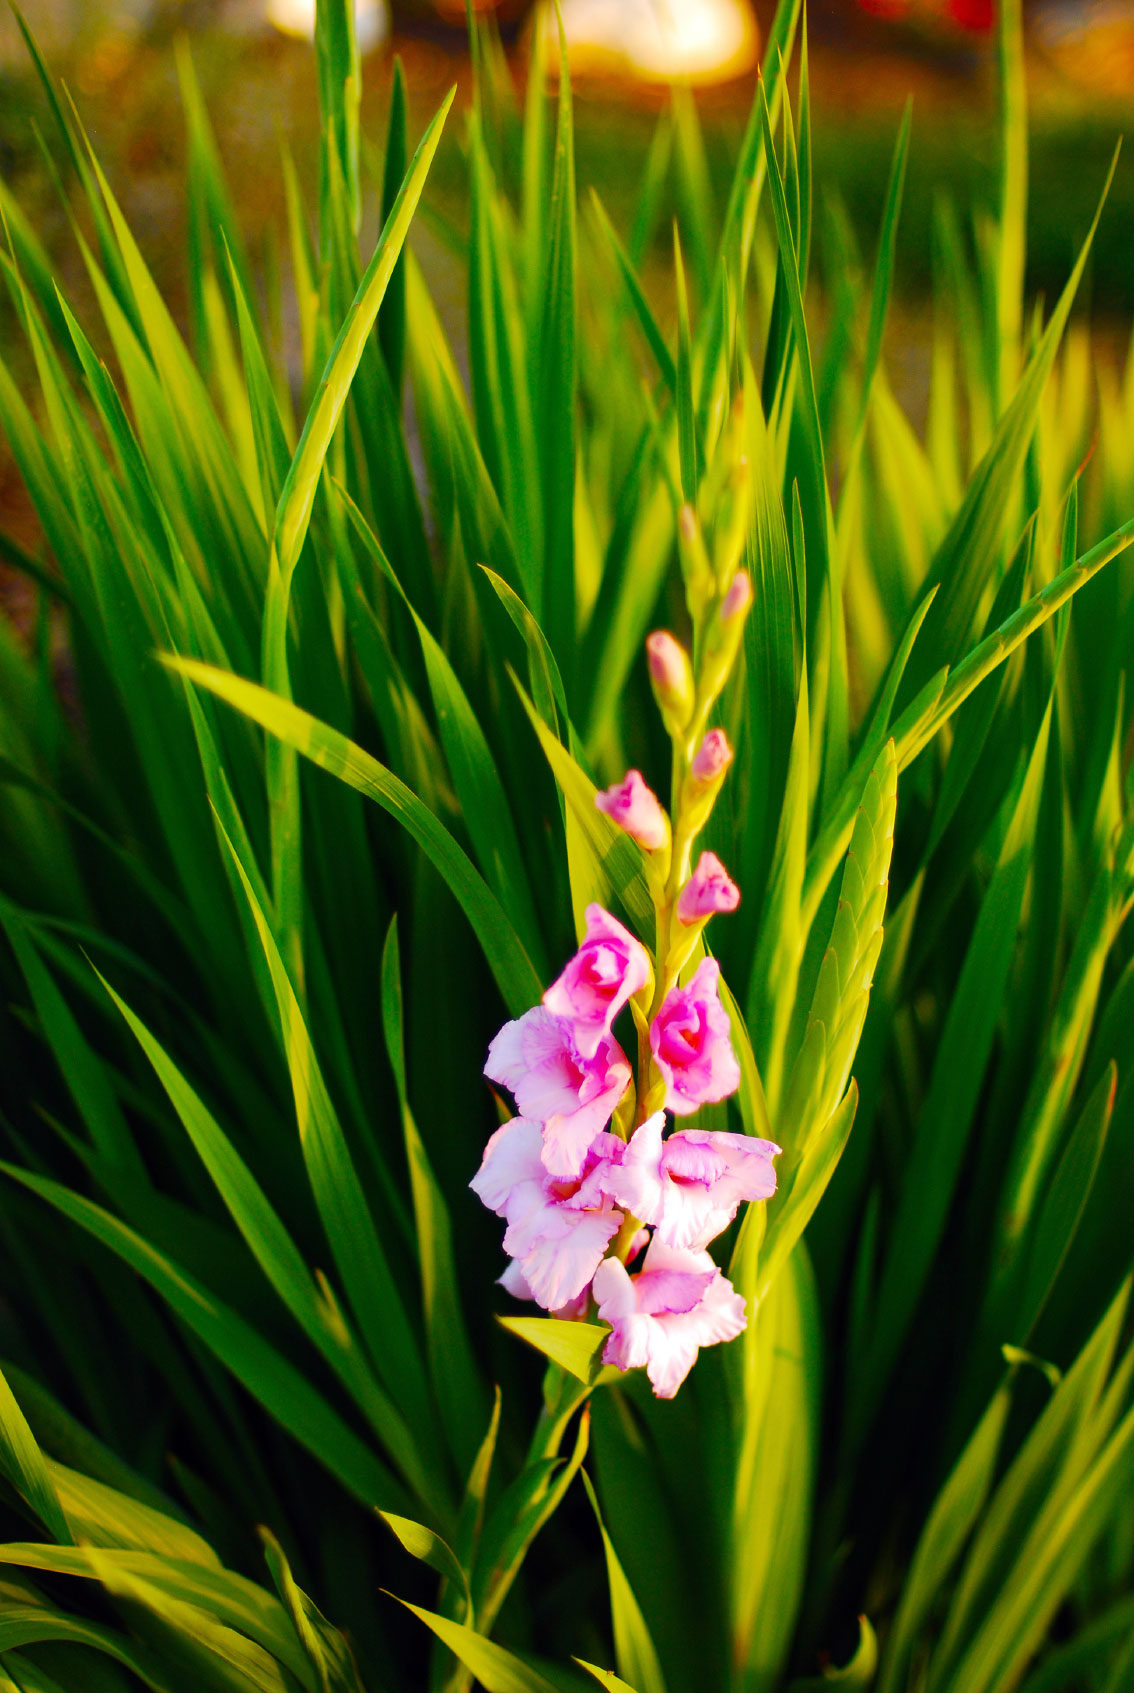 Reasons For No Blooms On Gladiolus Plants